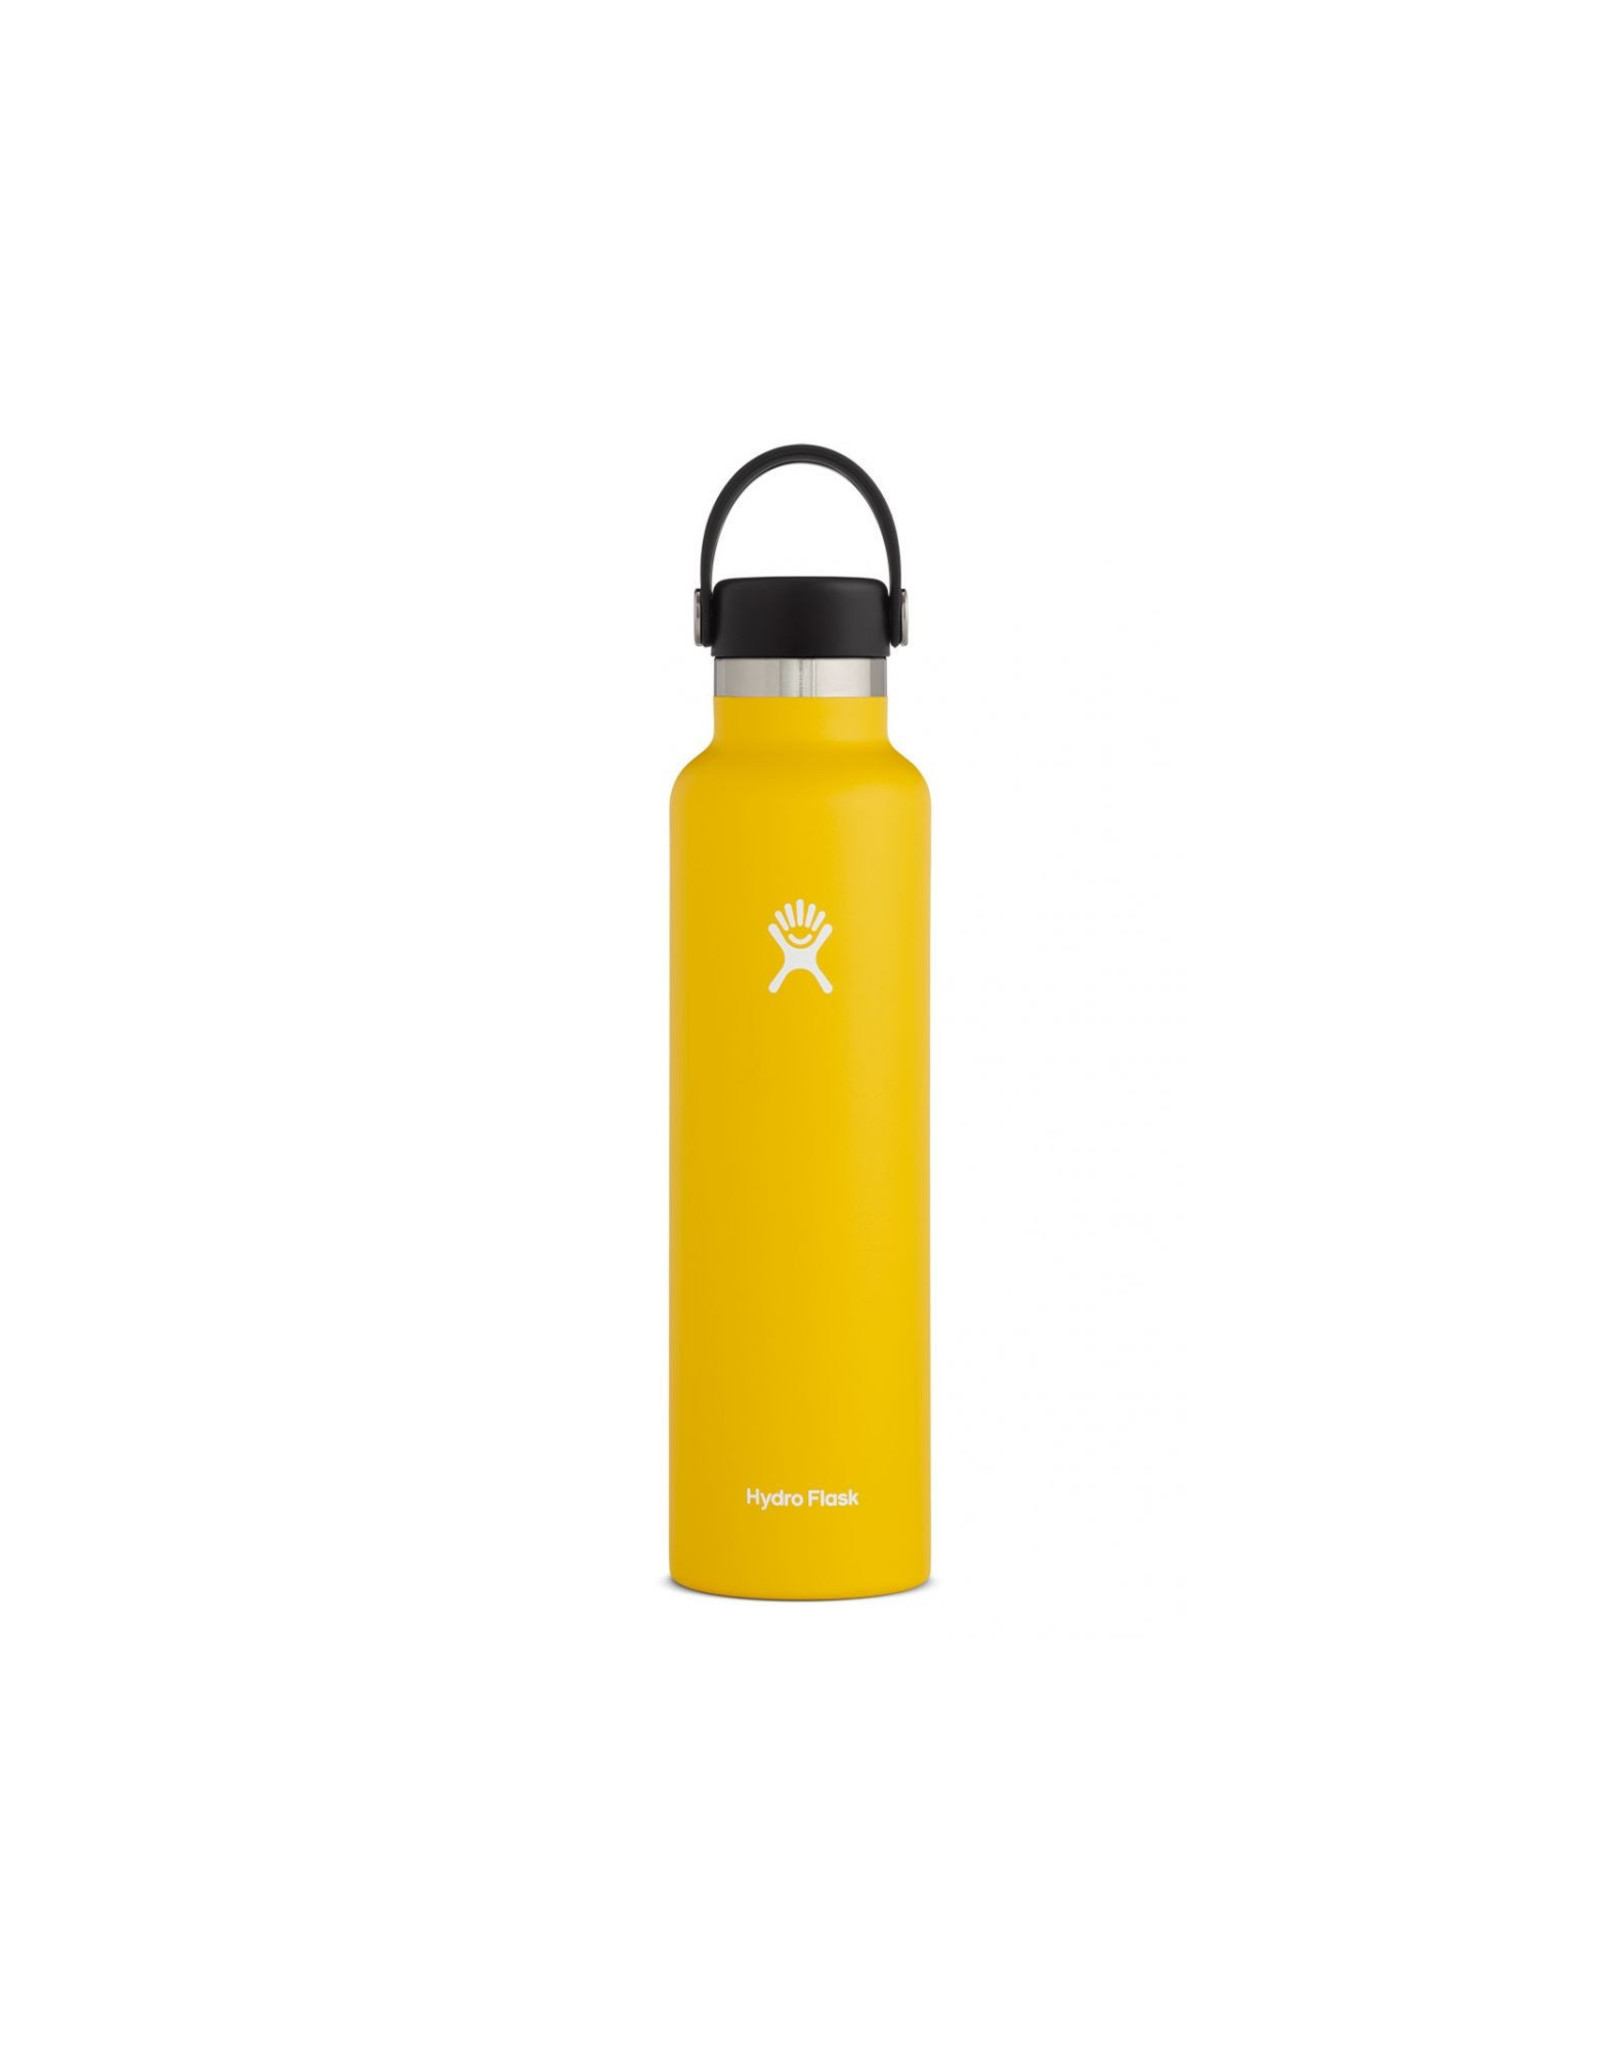 Hydro flask Bouteille 24OZ Hydro Flask